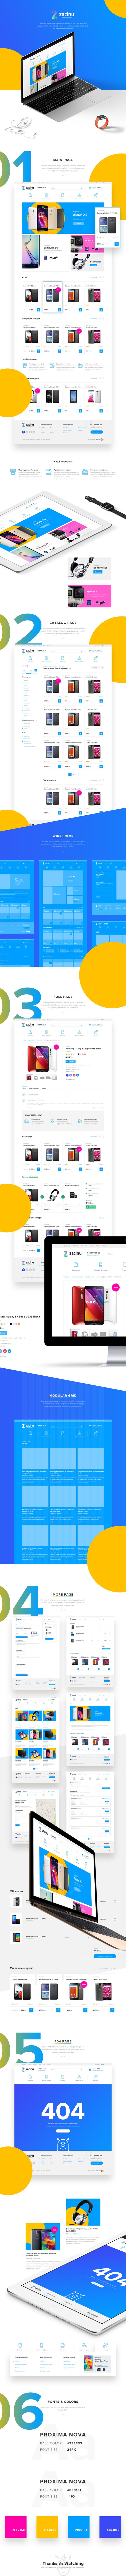 Ukrainian online store of mobile technology to suit every taste and pocket, with a pleasant web design and a well-designed interface that will leave no one indifferent.